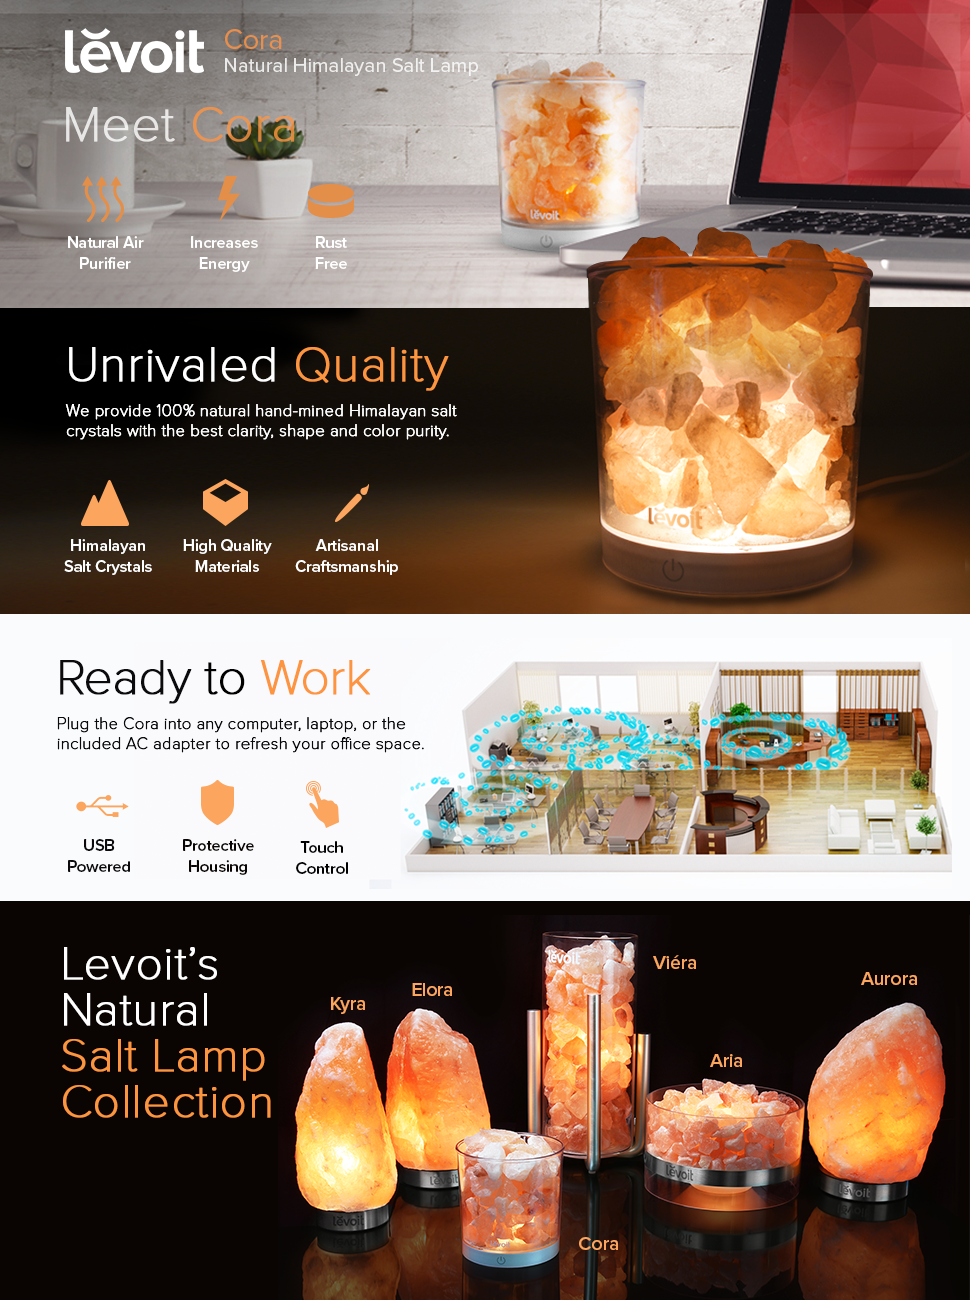 Salt lamps health benefits - Big Health Benefits In A Small Package Purify Air The Natural Way Reminiscent Of A Small Vase This Natural Himalayan Salt Lamp Can Easily Create A